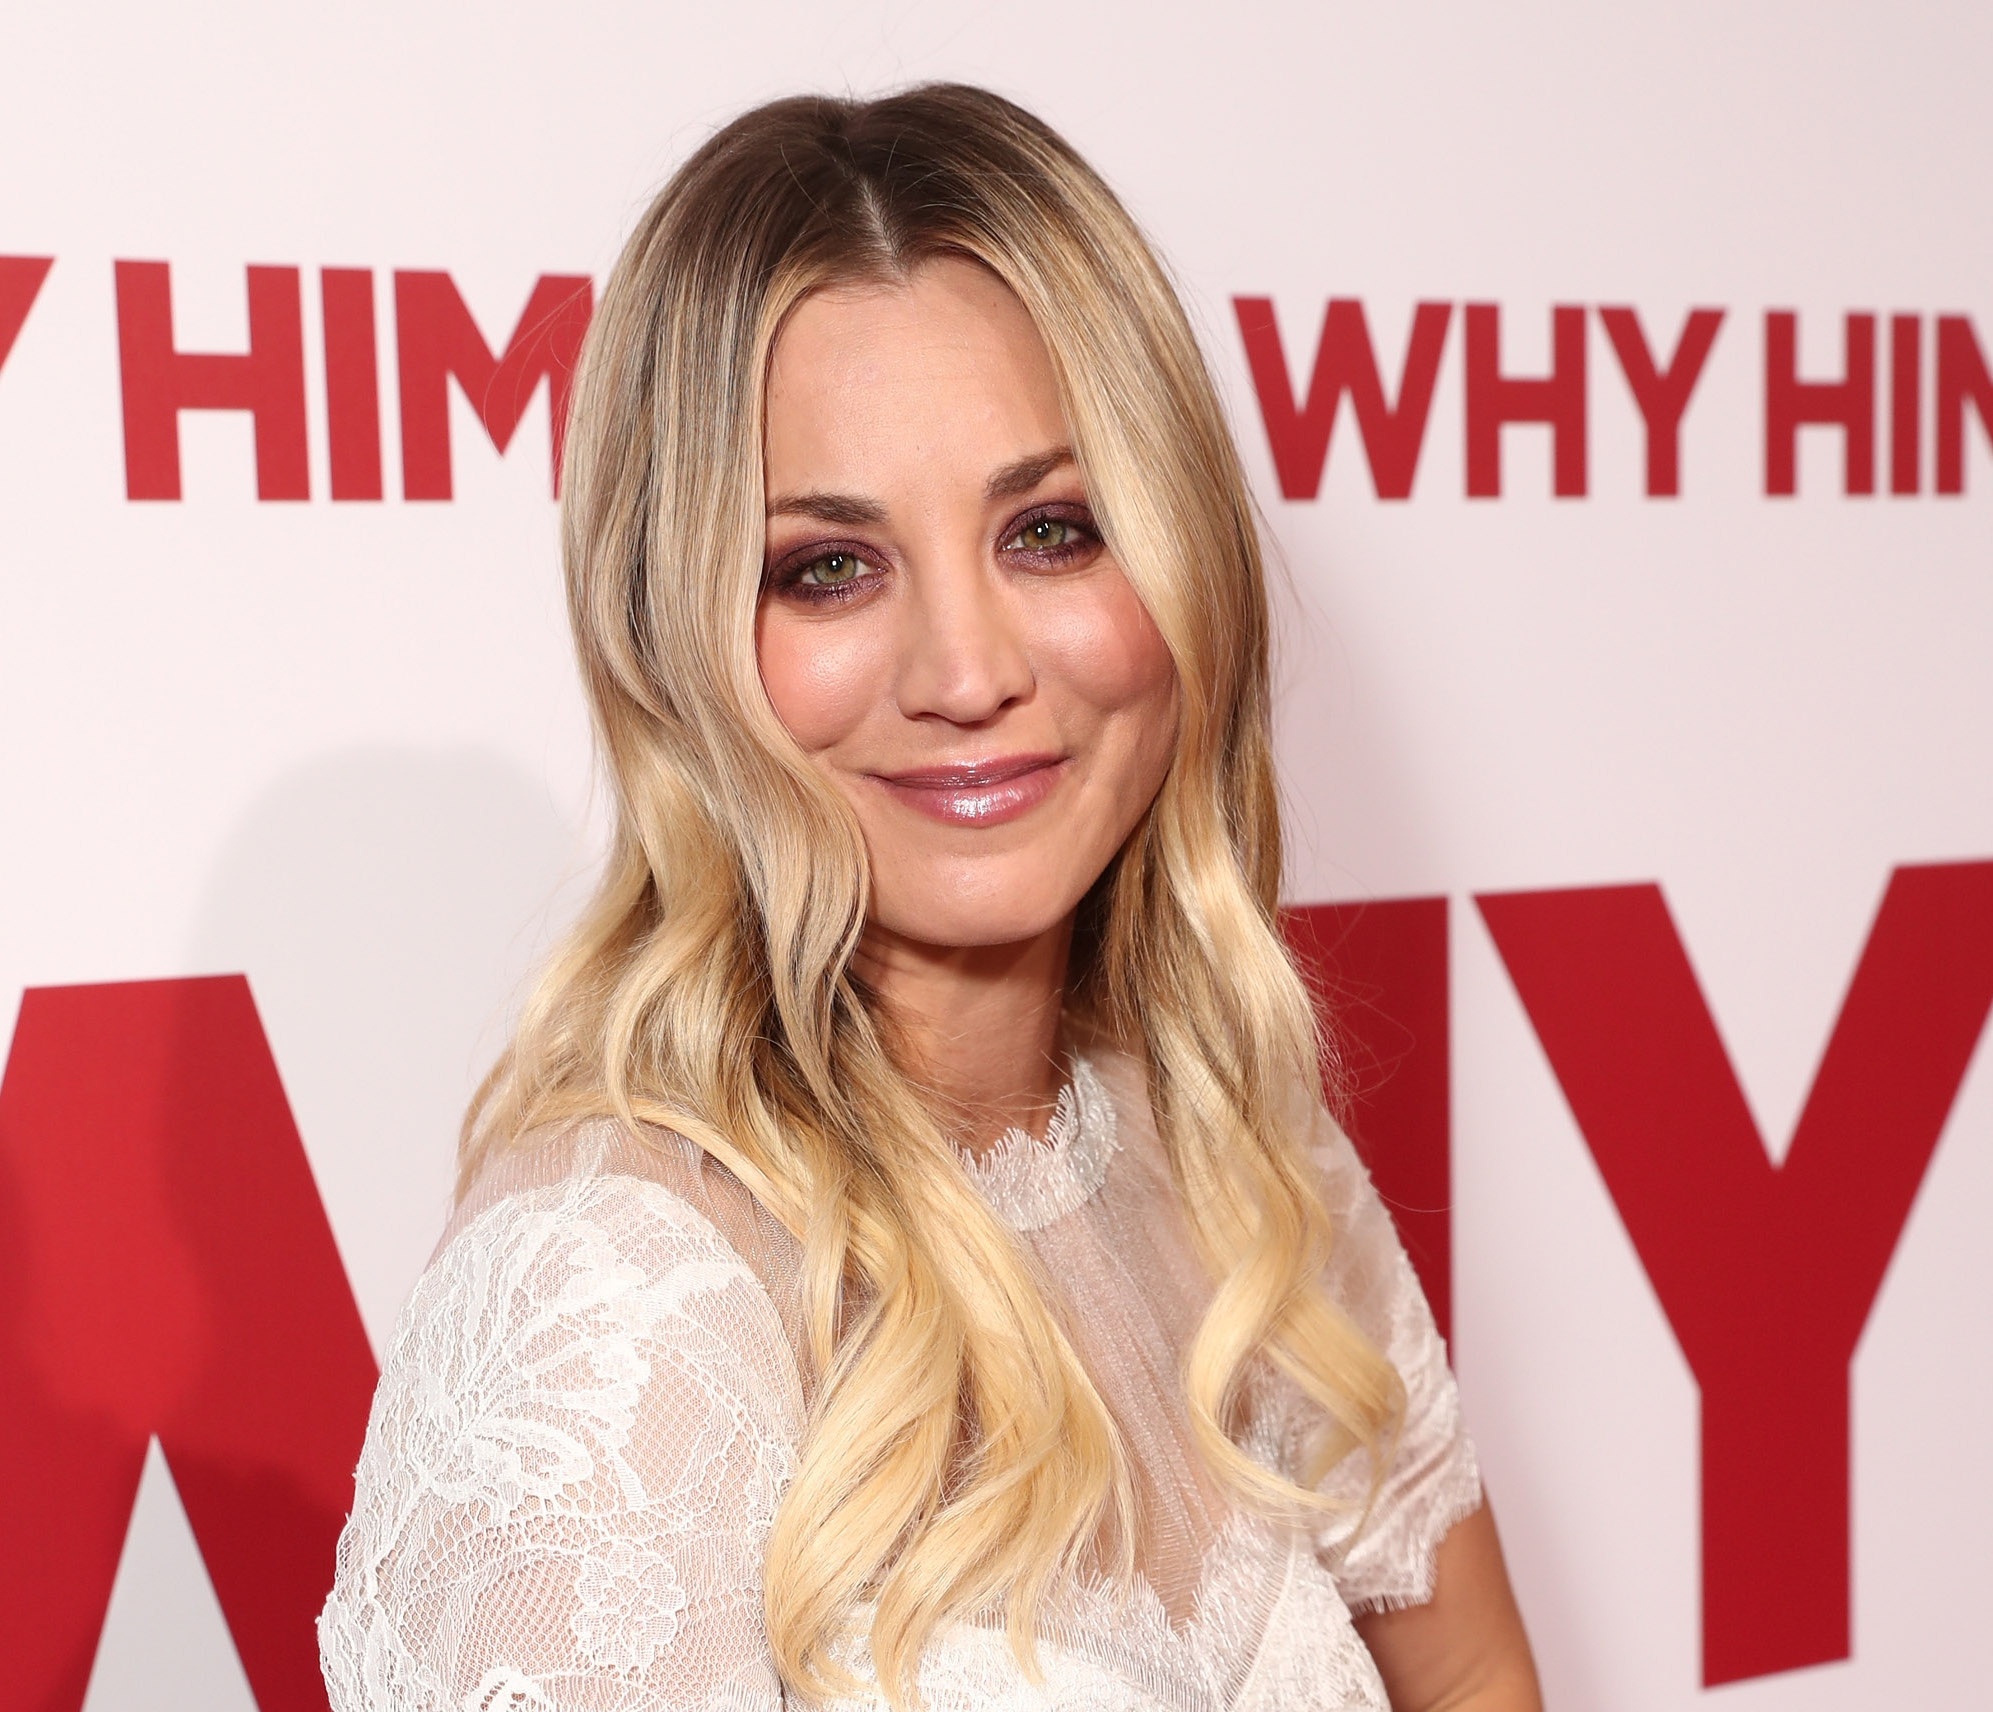 Kaley Cuoco wore one of our all-time favorite color combos to the People's Choice Awards